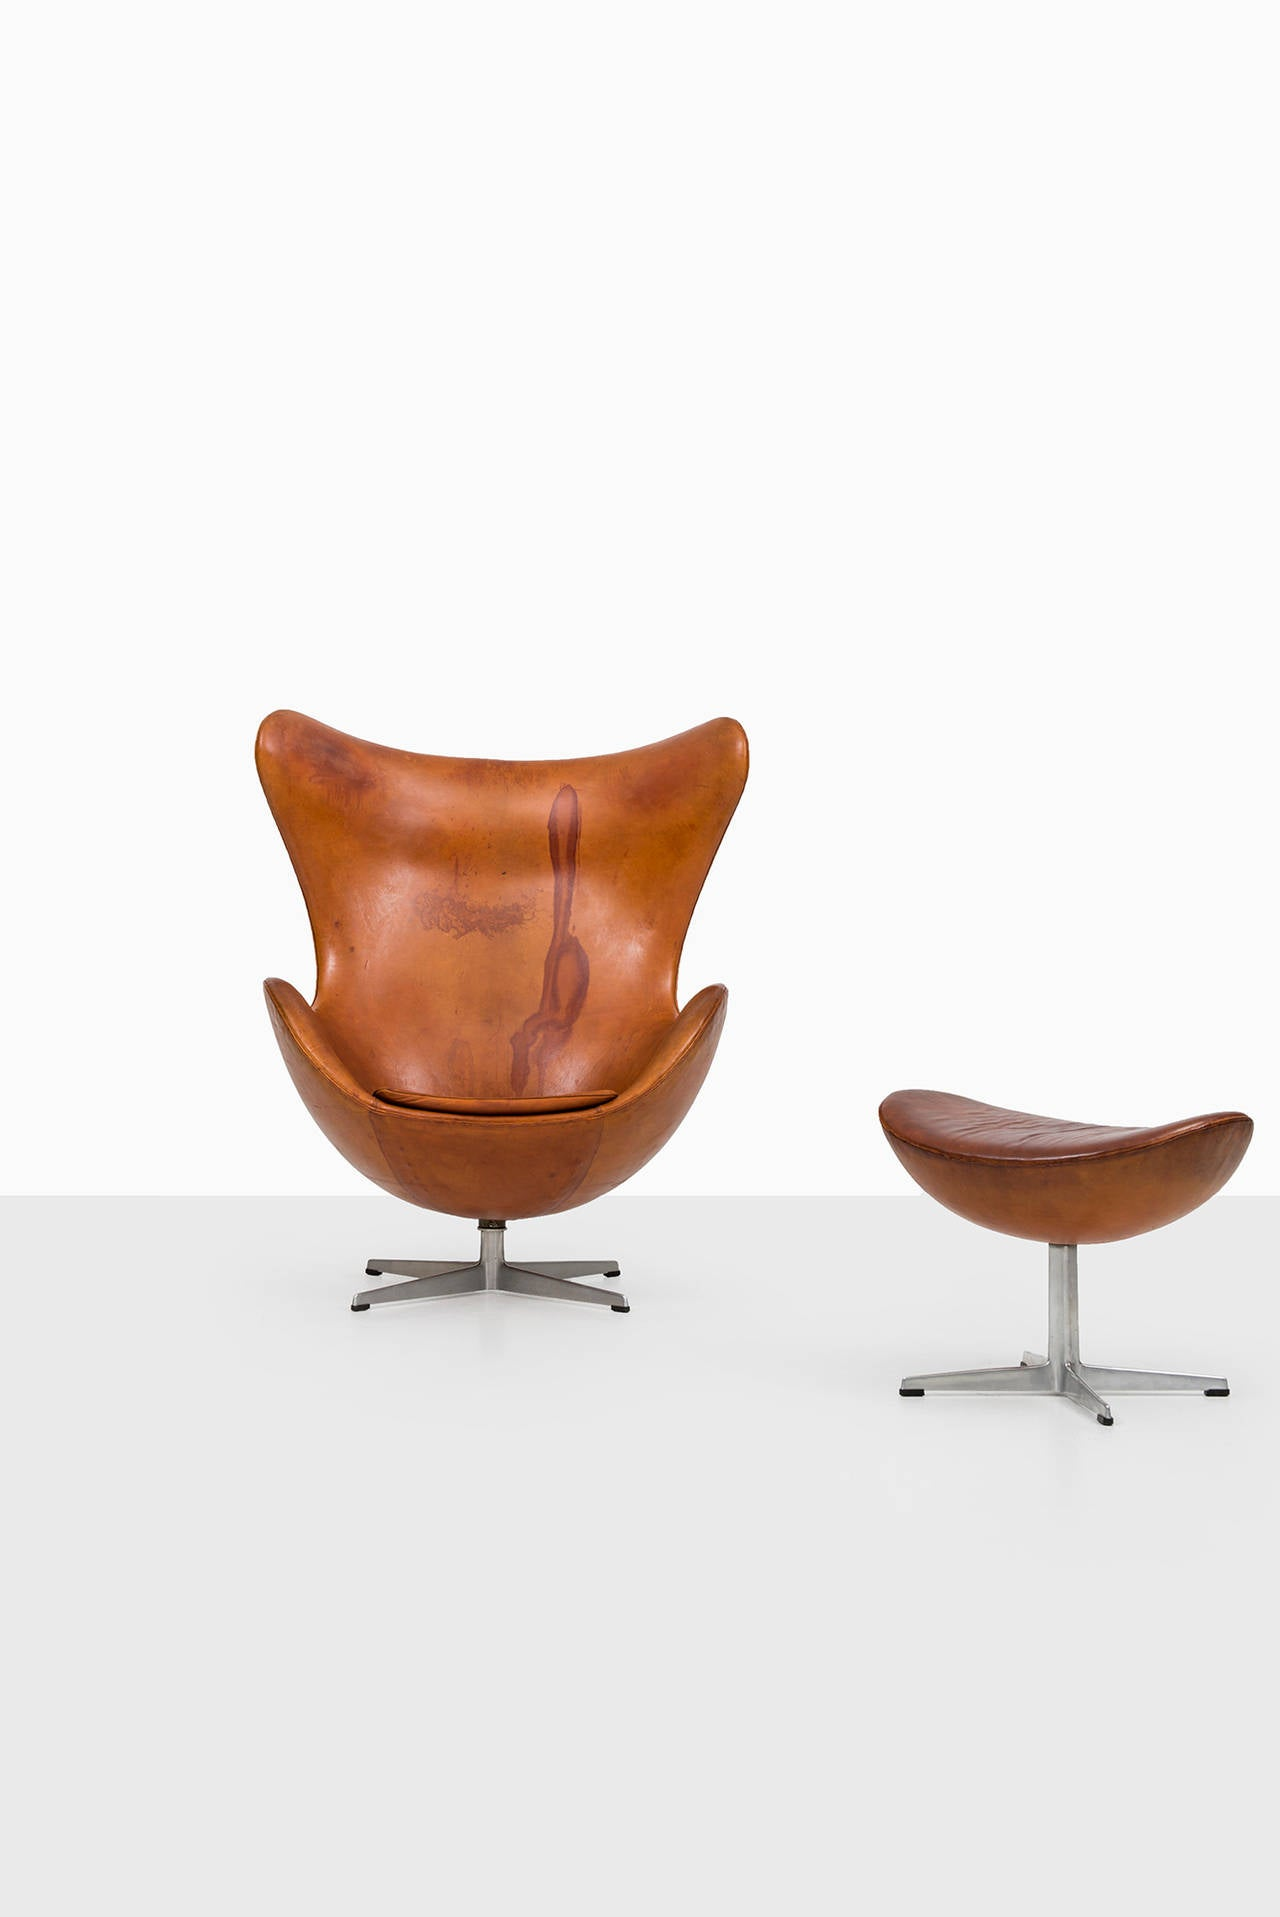 This arne jacobsen swan chair in cognac leather by fritz hansen is no - Arne Jacobsen Egg Chair In Original Cognac Brown Leather By Fritz Hansen 3